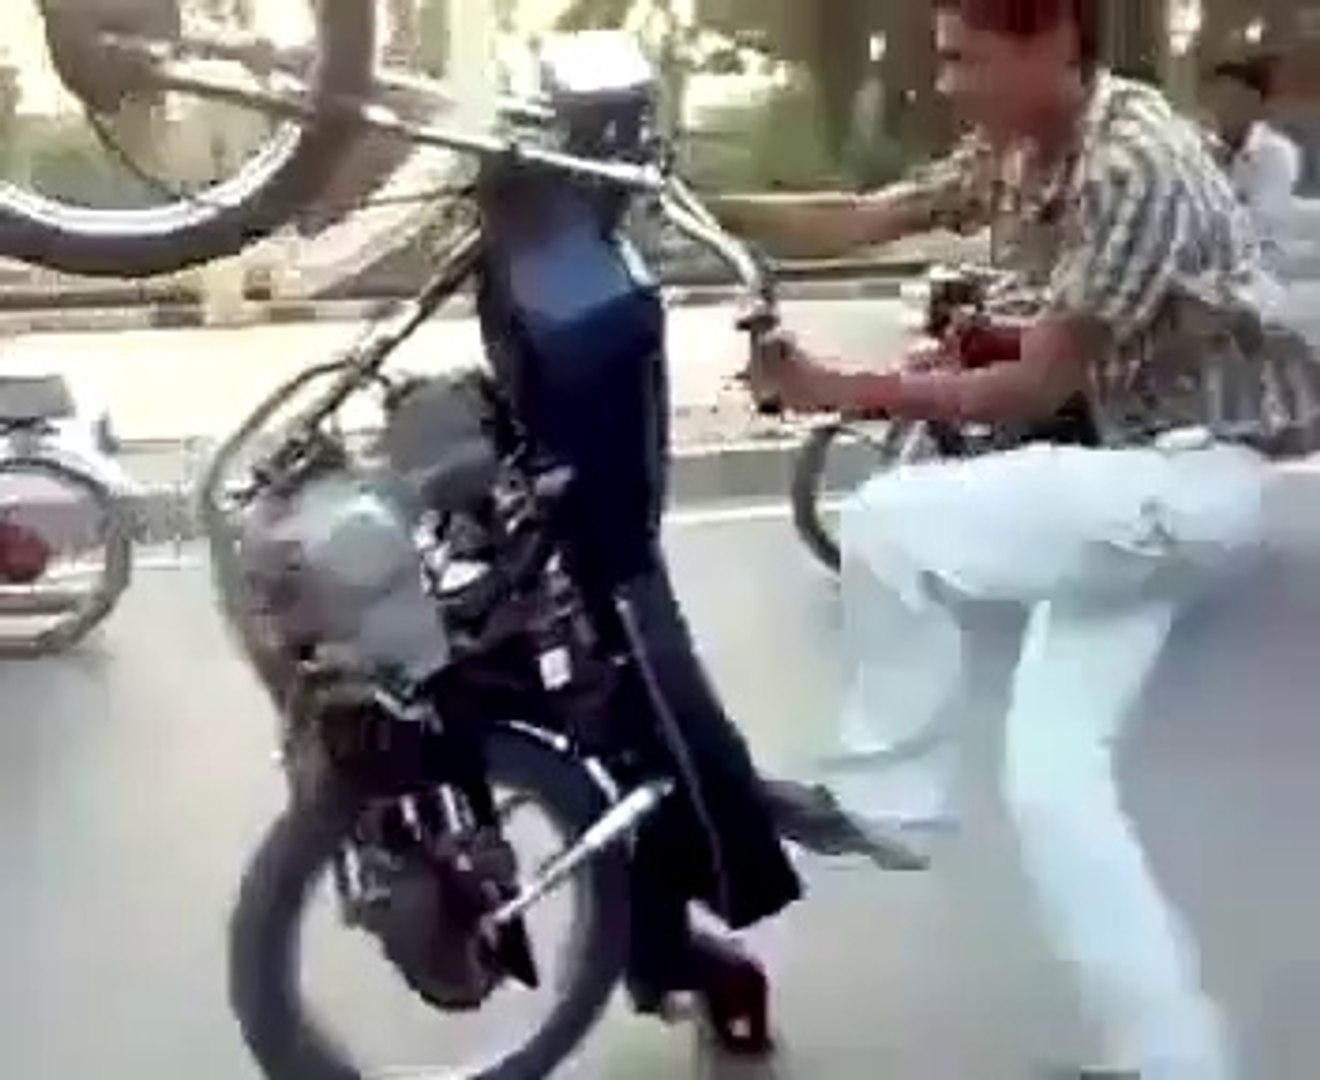 motorcykle fail Bike fails Funny Accident 2013 for FAIL Compilation 2013 [HD+] [18+] ПРИКОЛЫ 2013